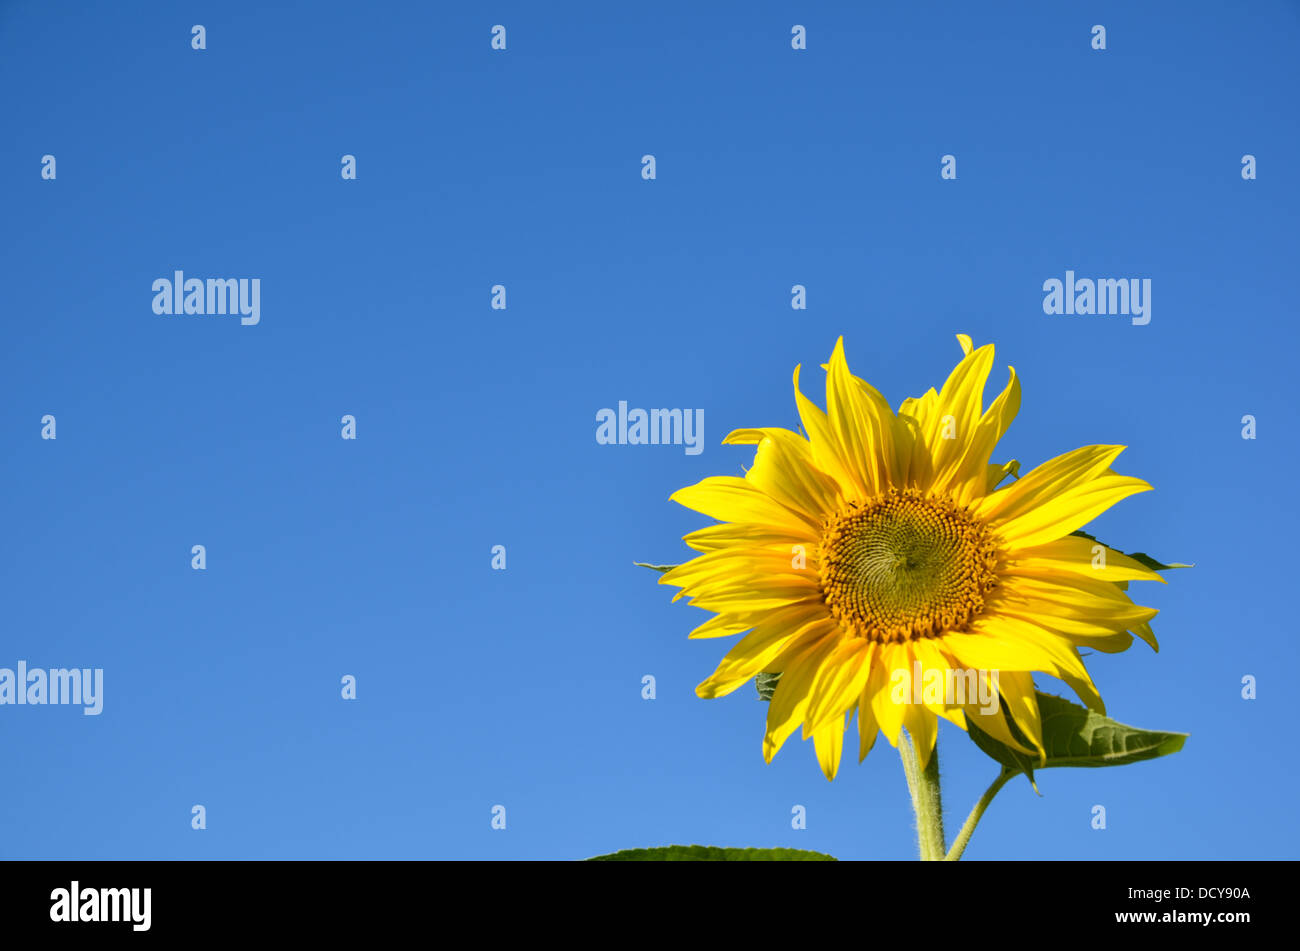 Single sunflower at a clear cloudless blue sky - Stock Image